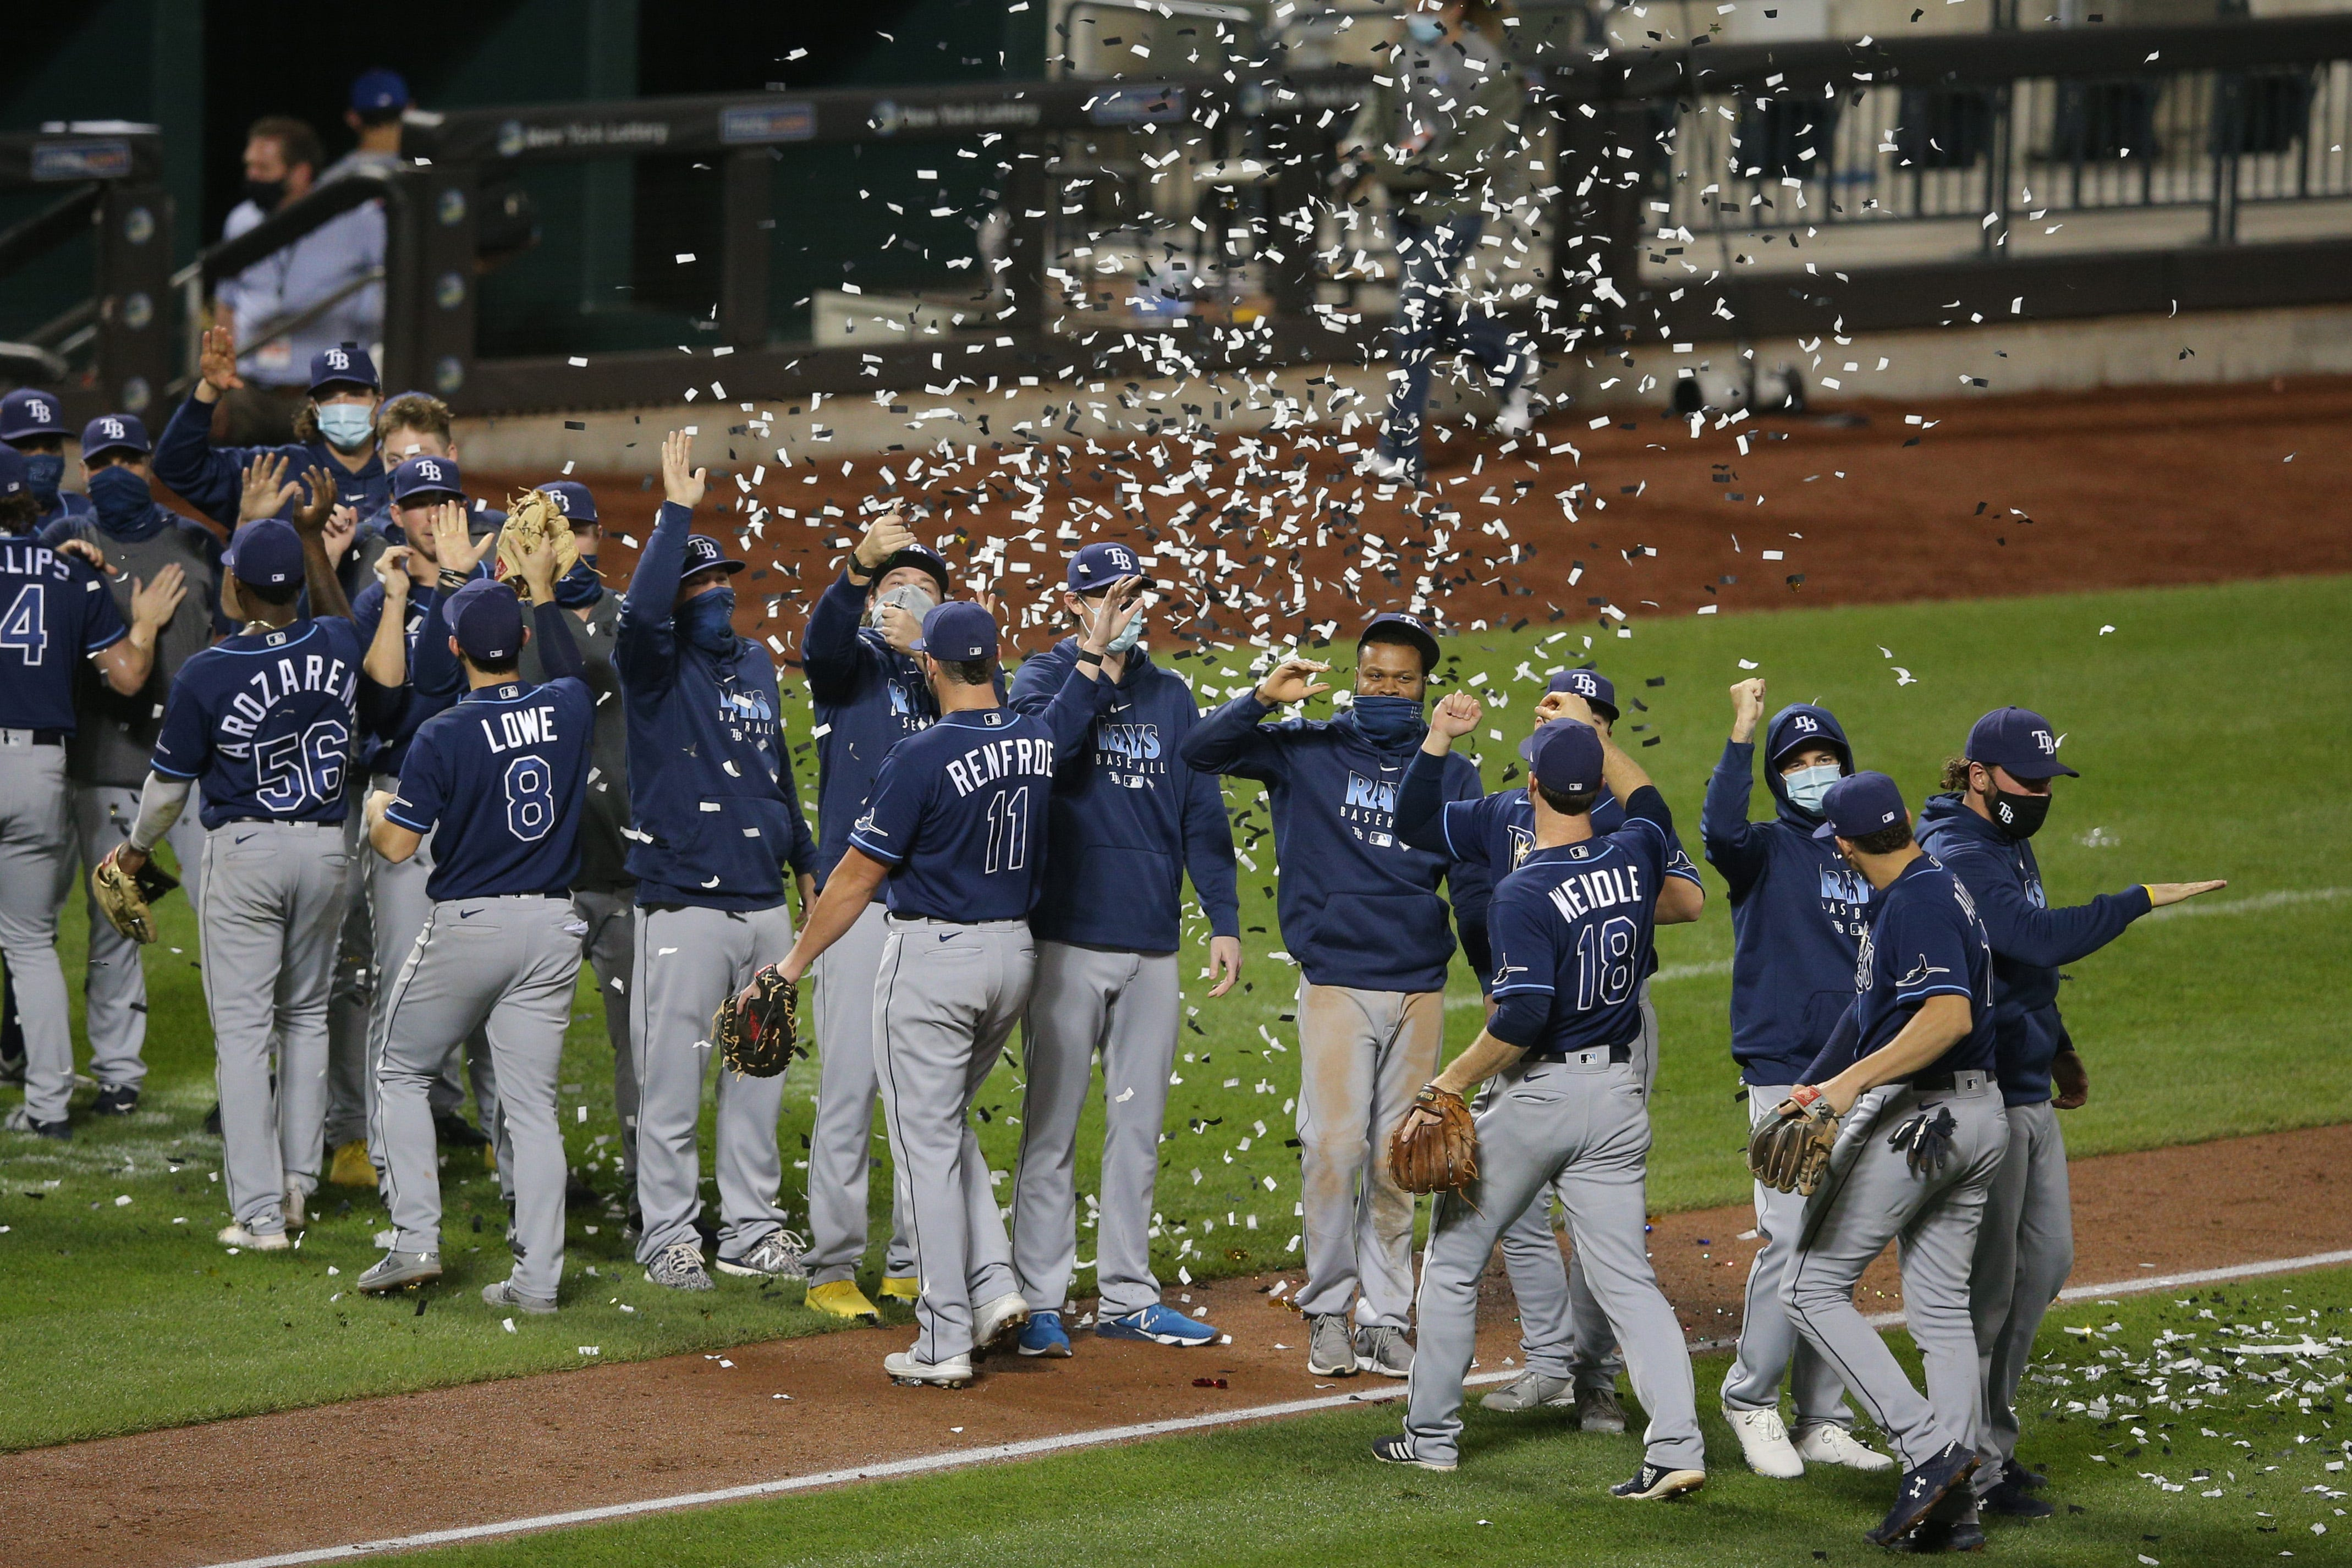 Tampa Bay Rays vs. Toronto Blue Jays: AL Wild Card series preview, schedule, predictions for MLB playoffs